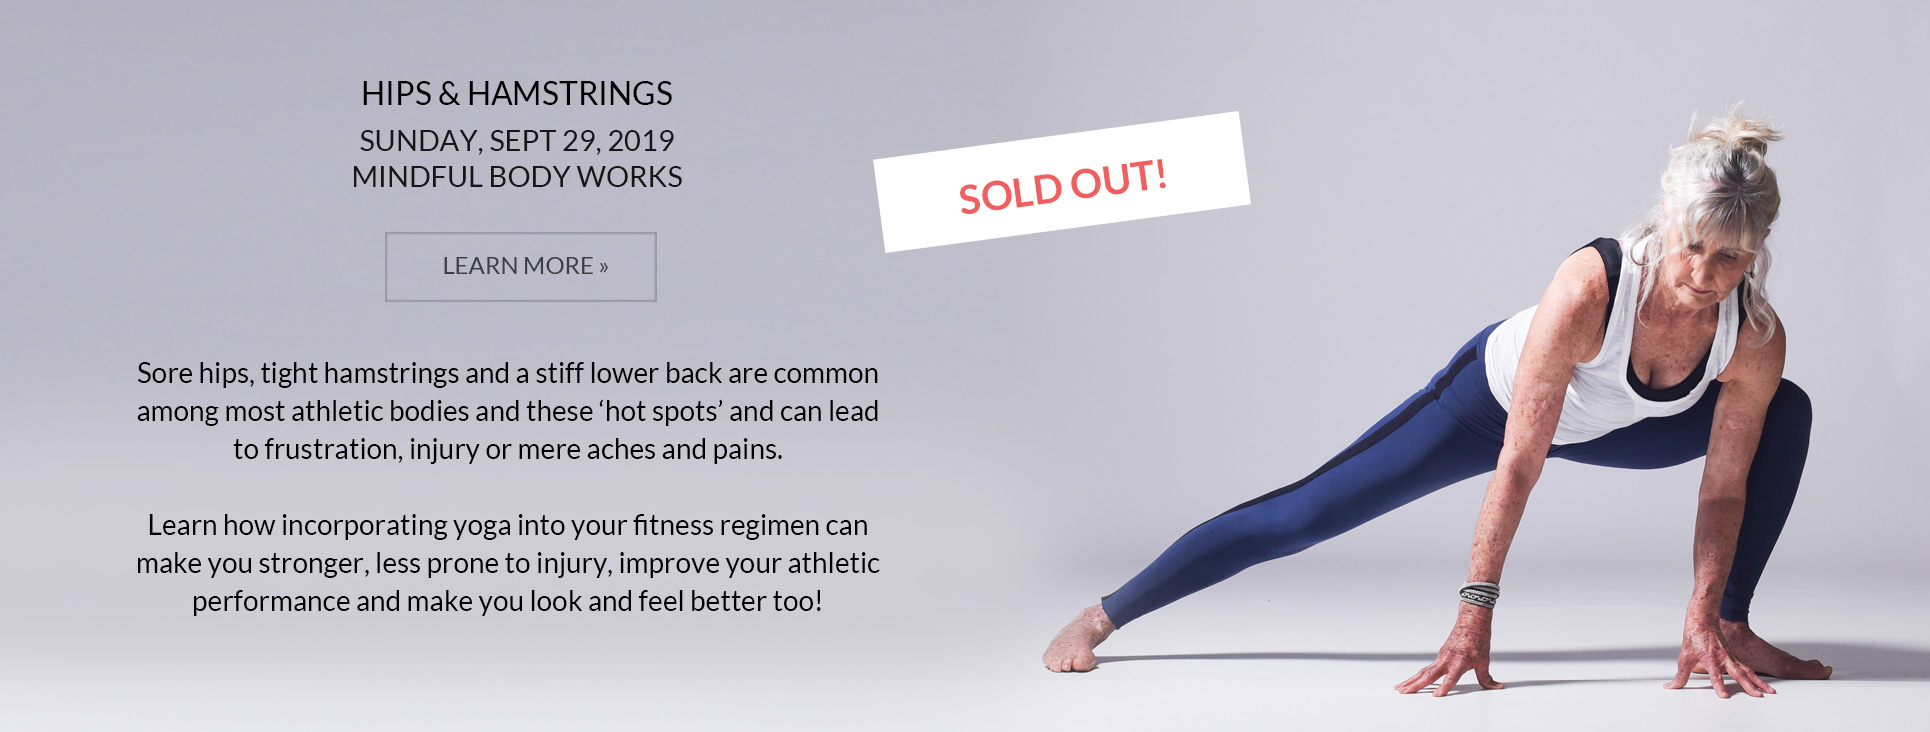 Hips and Hamstrings Workshop - Sold out!